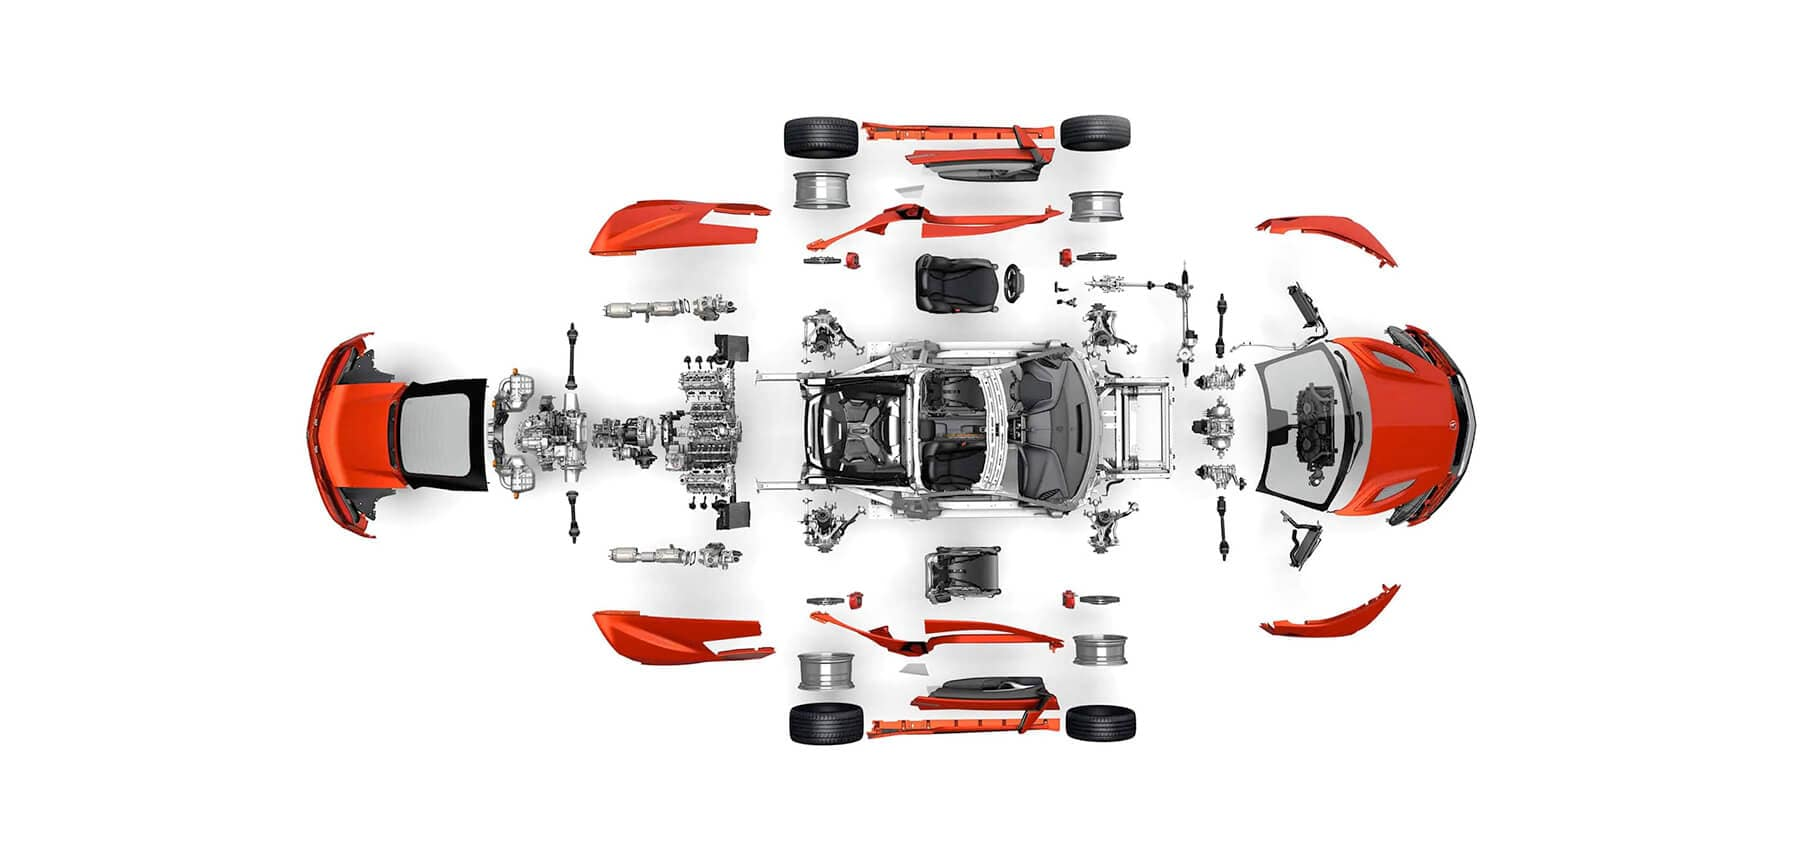 Acura Sport Hybrid Performance It All Comes Together Image